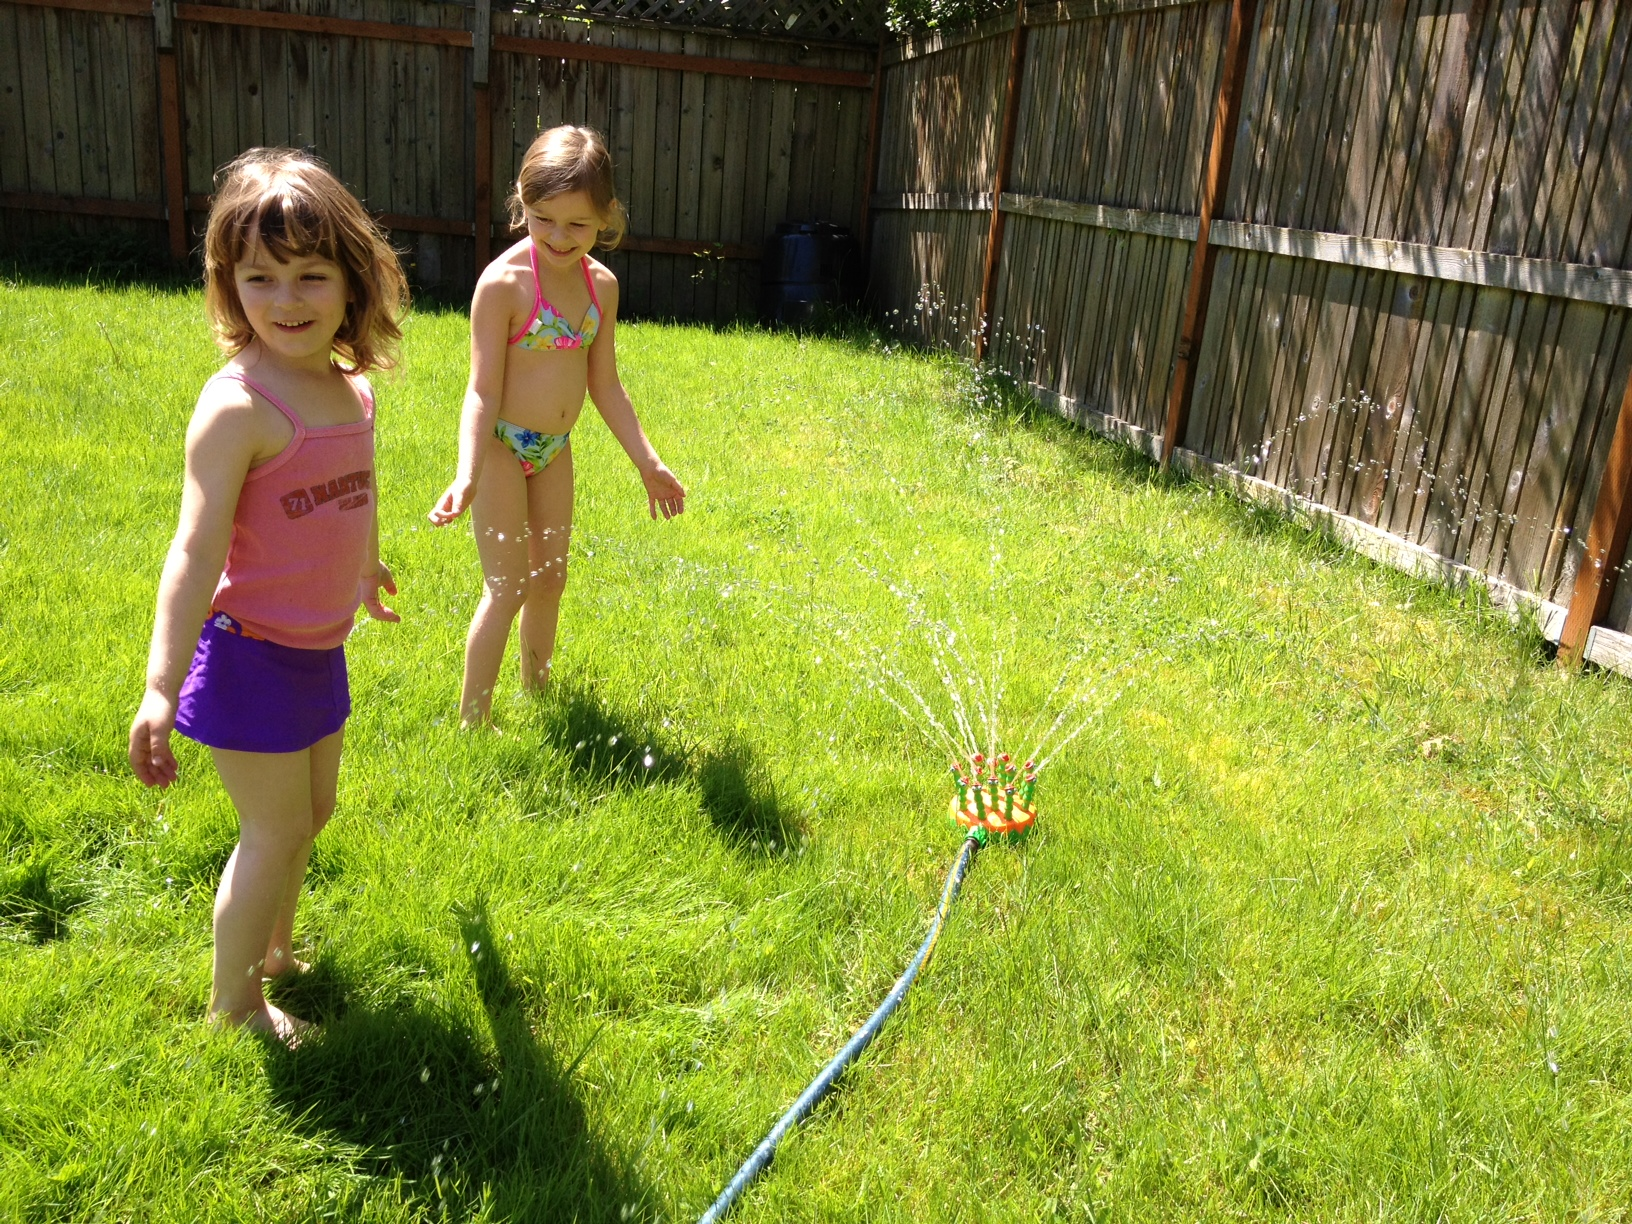 Two Portland girls make fun with some spring, not-quite-hot-yet sun